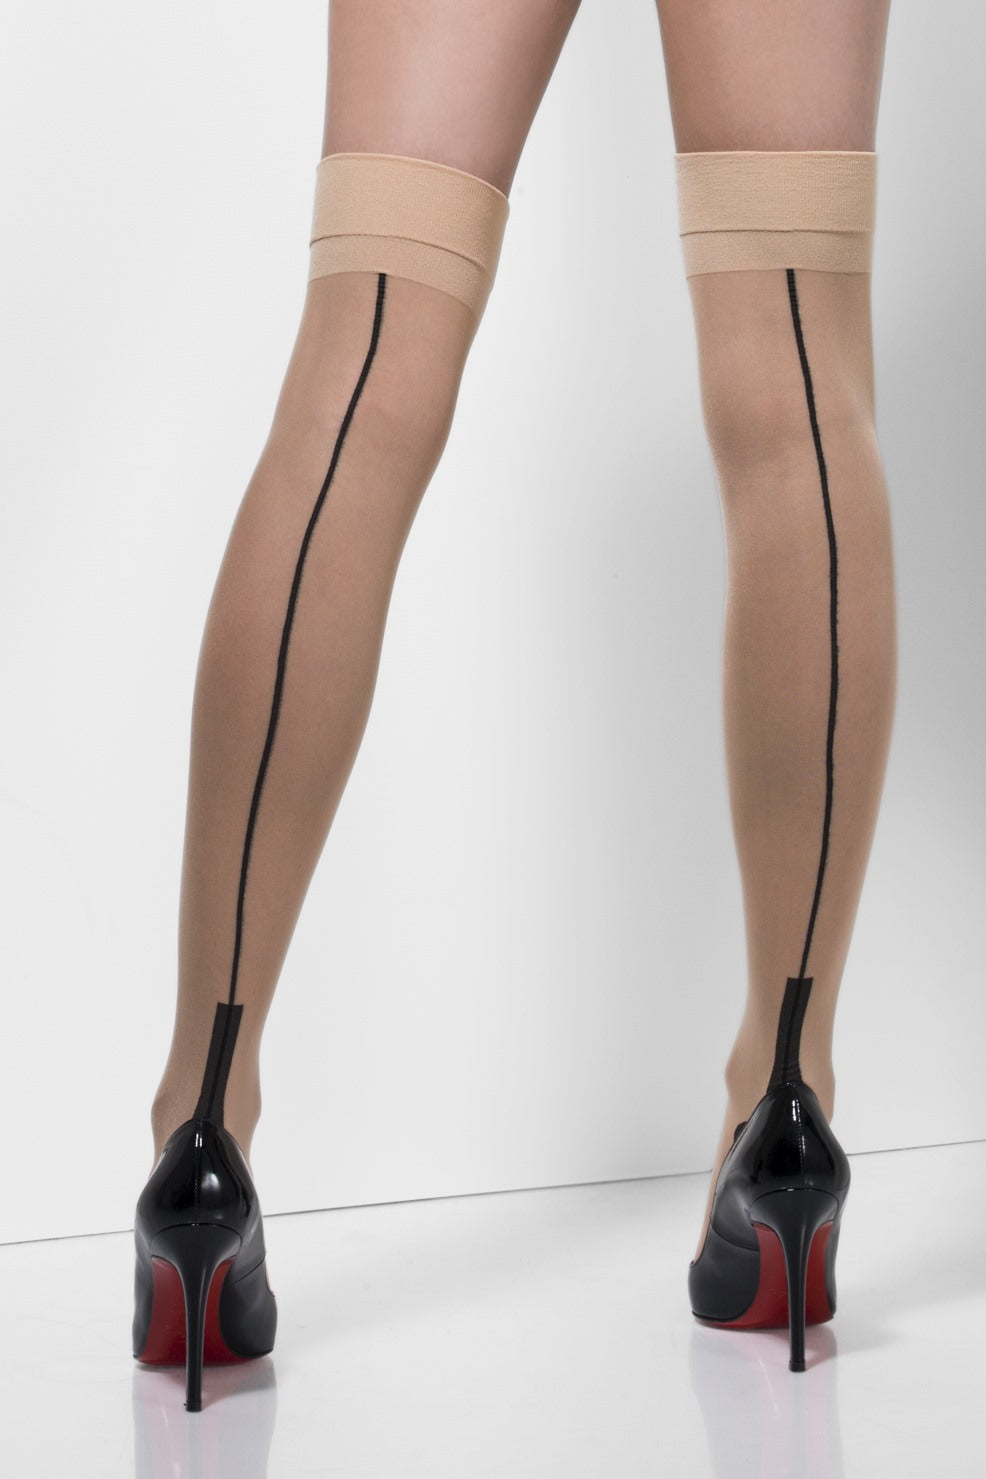 Sheer Seamed hold Ups